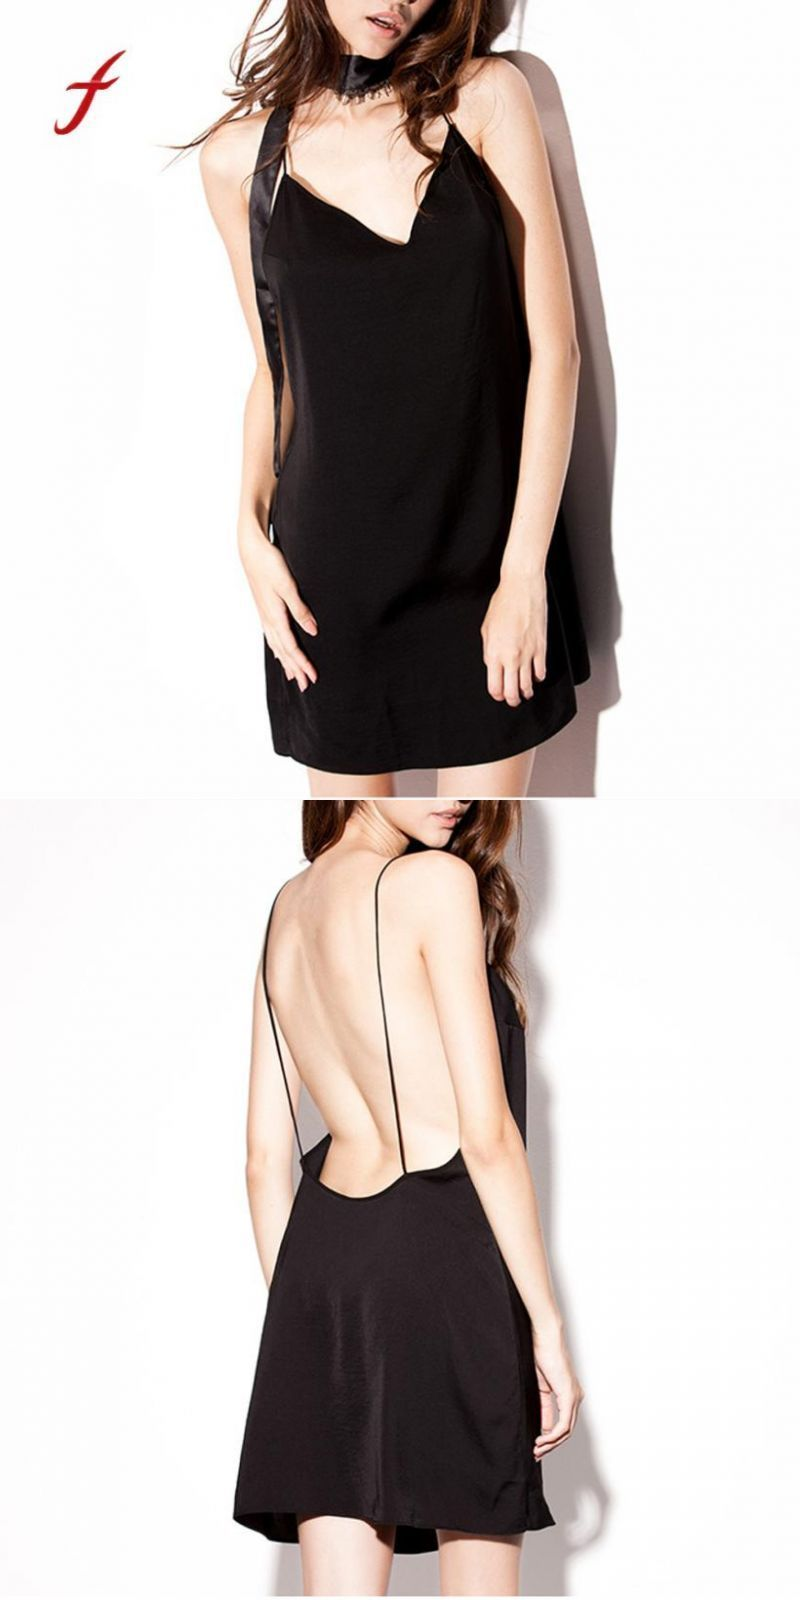 d50ae14693a92 Sexy lingerie erotic backless sleepwear deep v neck night dress home  clothes for women ladies nightgown